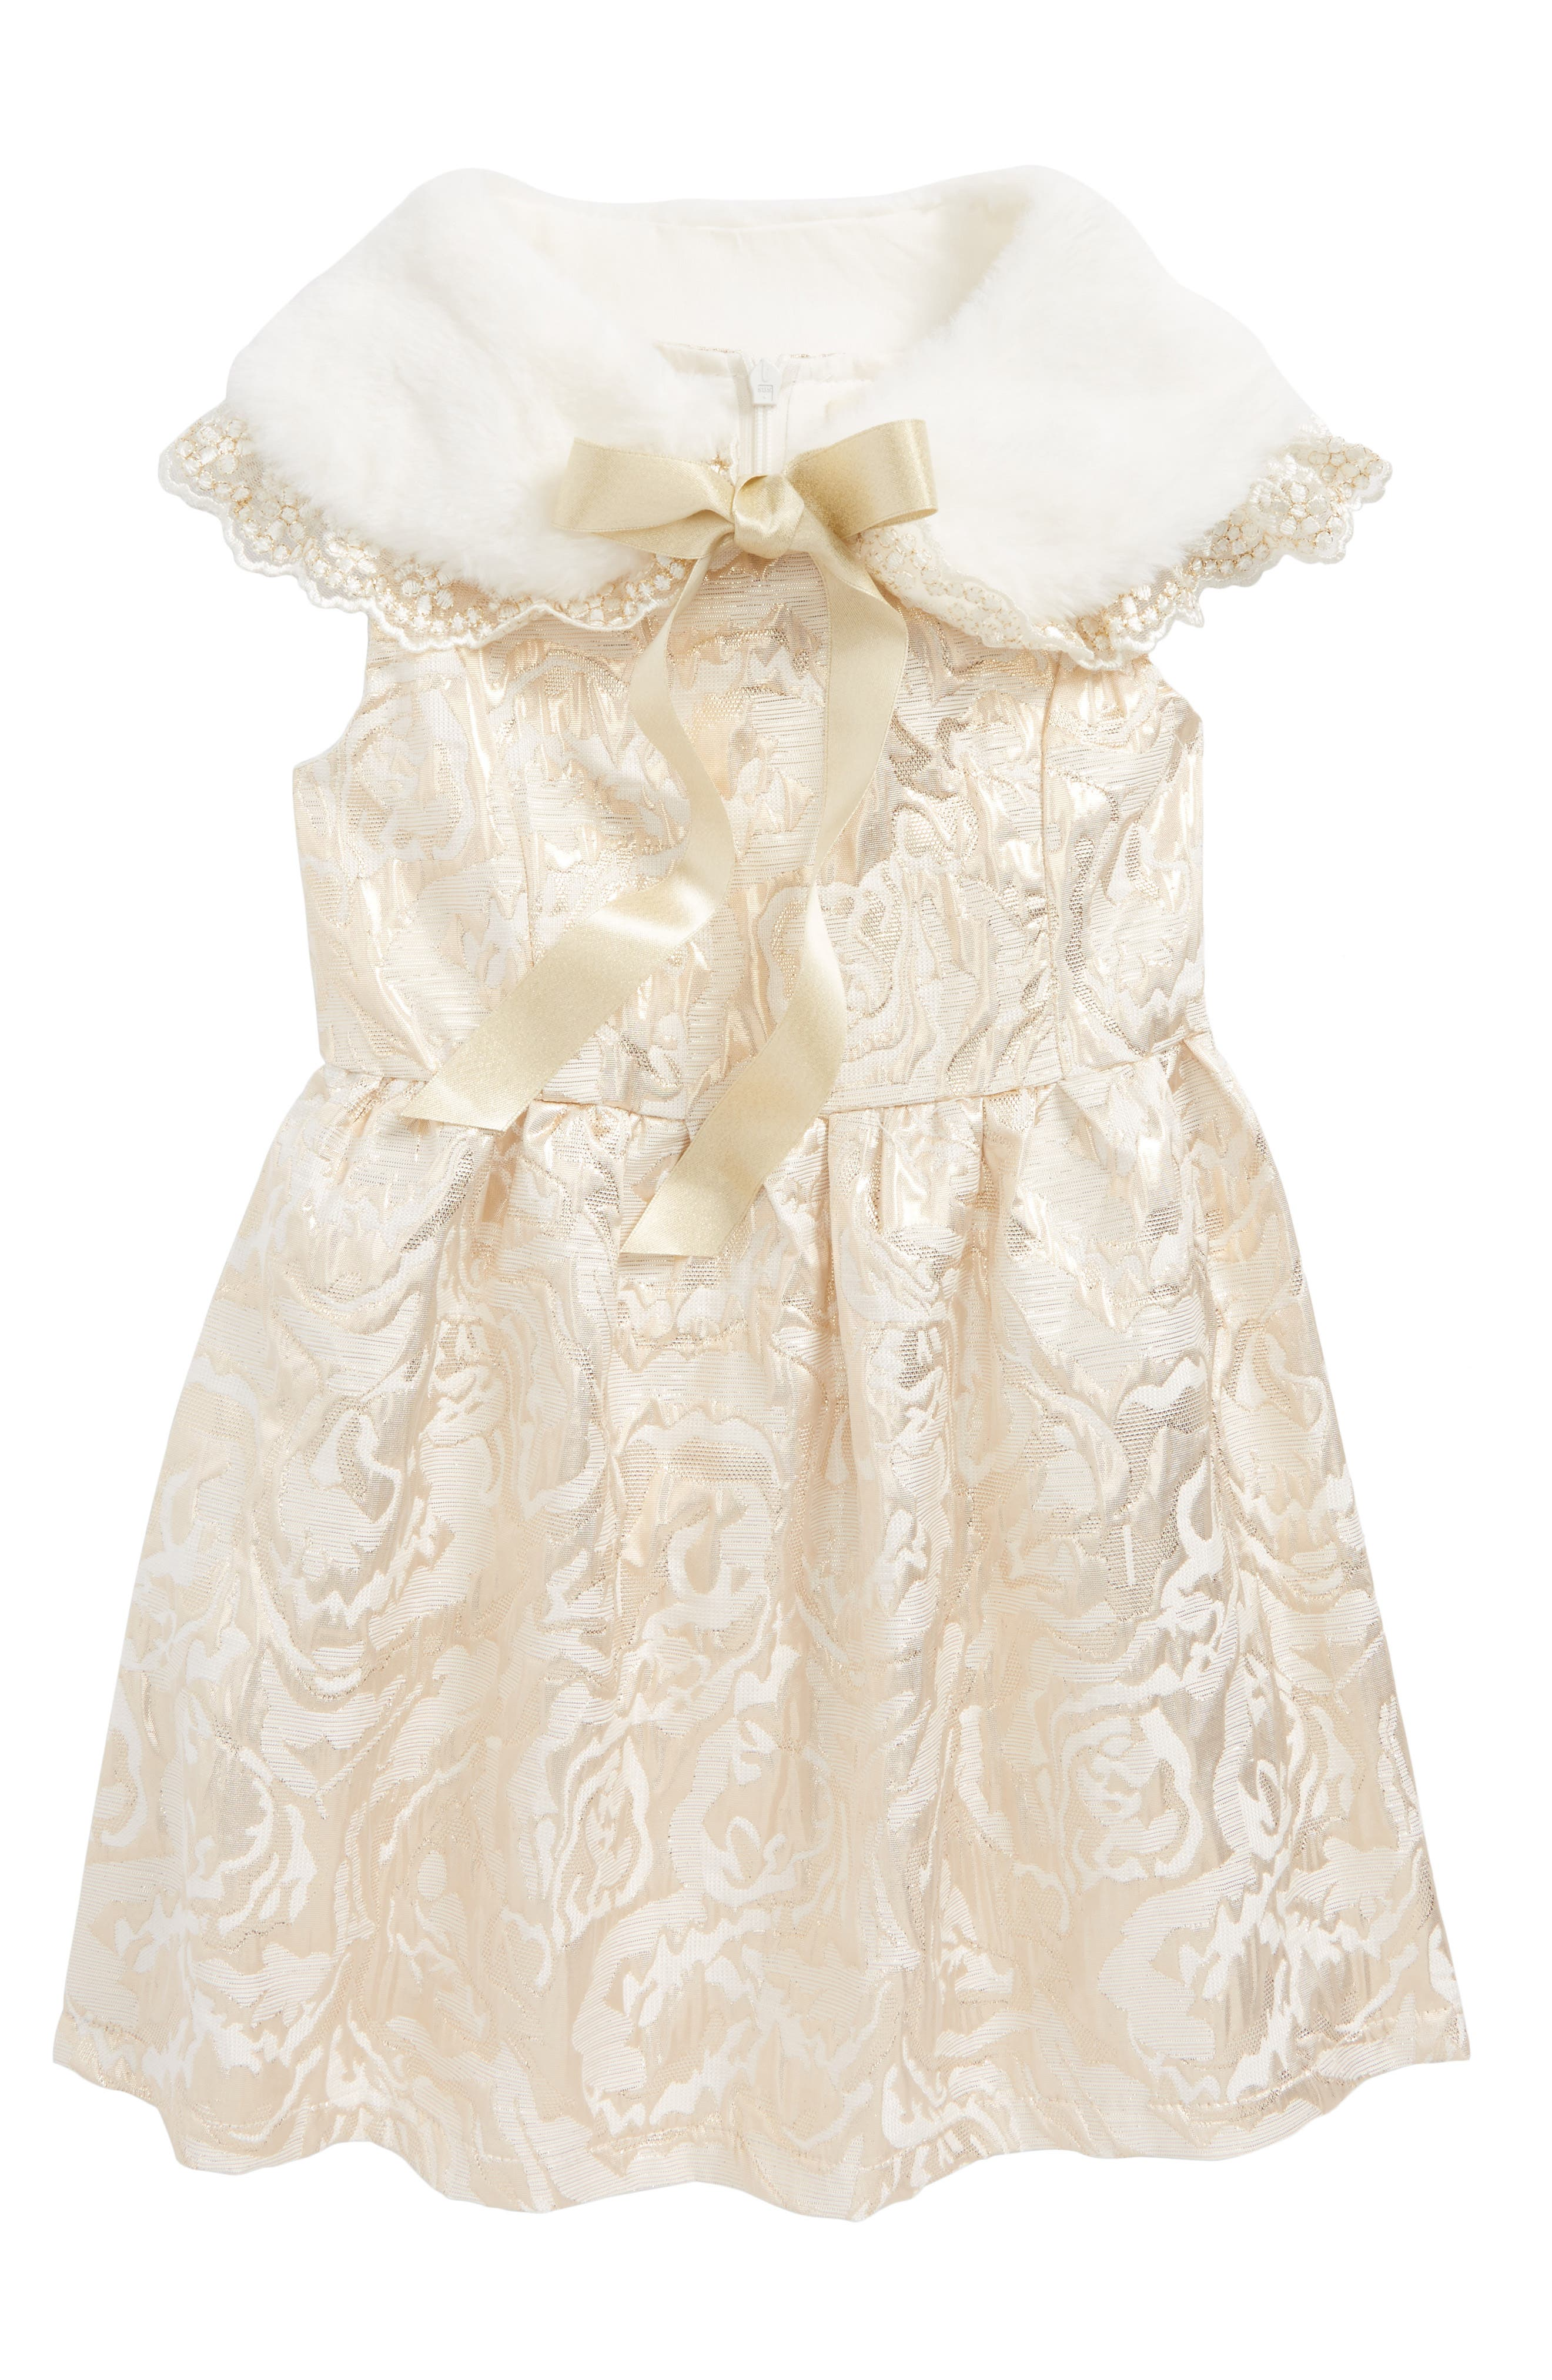 Alternate Image 1 Selected - Doe a Dear Metallic Jacquard Skater Dress with Faux Fux Collar (Toddler Girls, Little Girls & Big Girls)